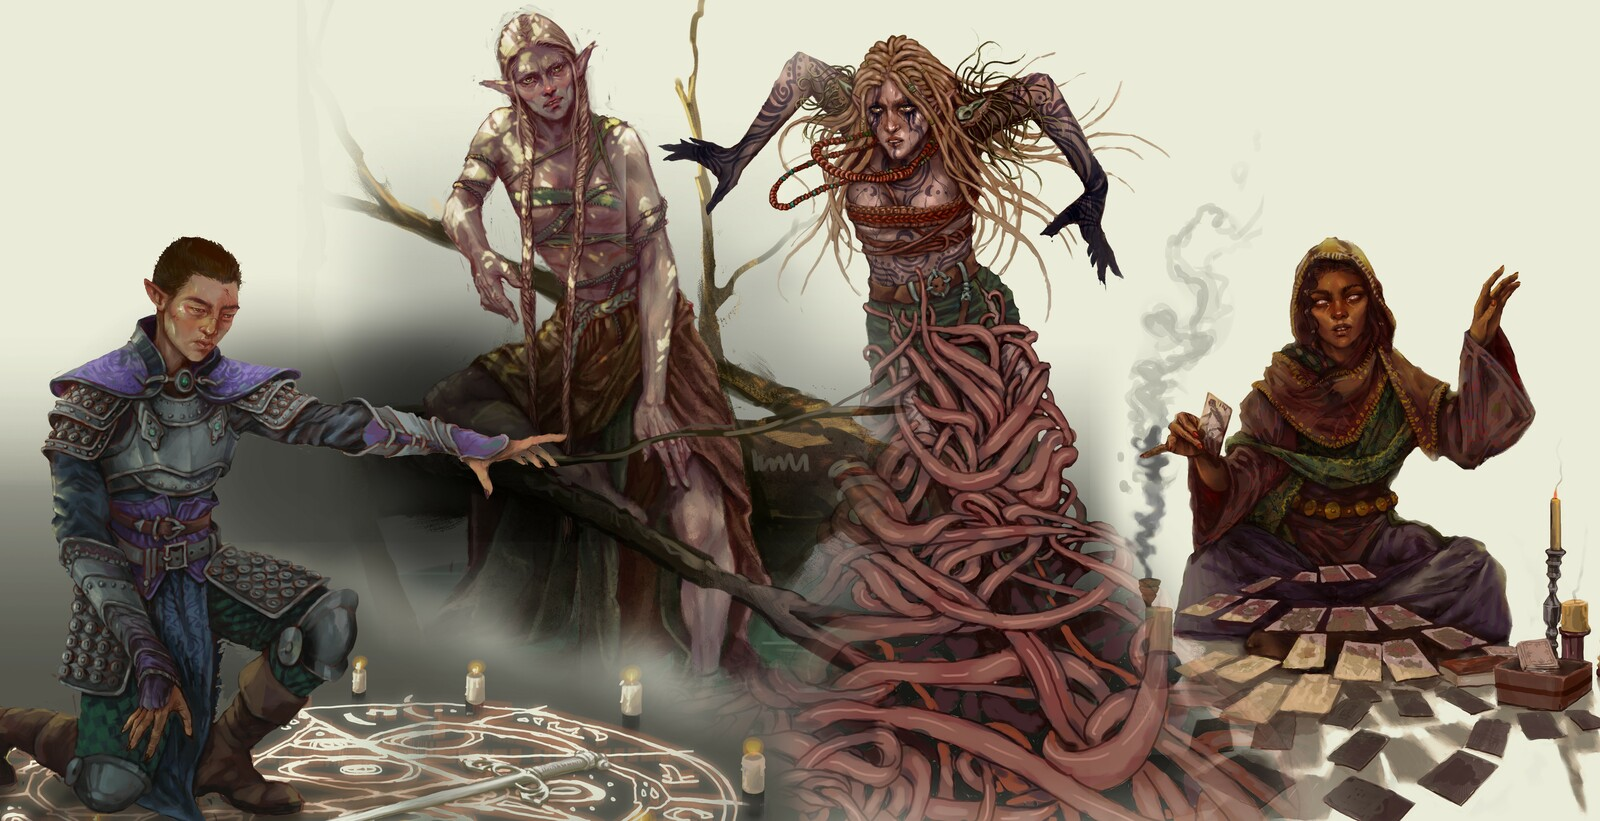 Fighter Archetype, Secrets of the Swamp witch , Druid - Circle of Vermiform and Secrets of Prophecy witch (left to right)